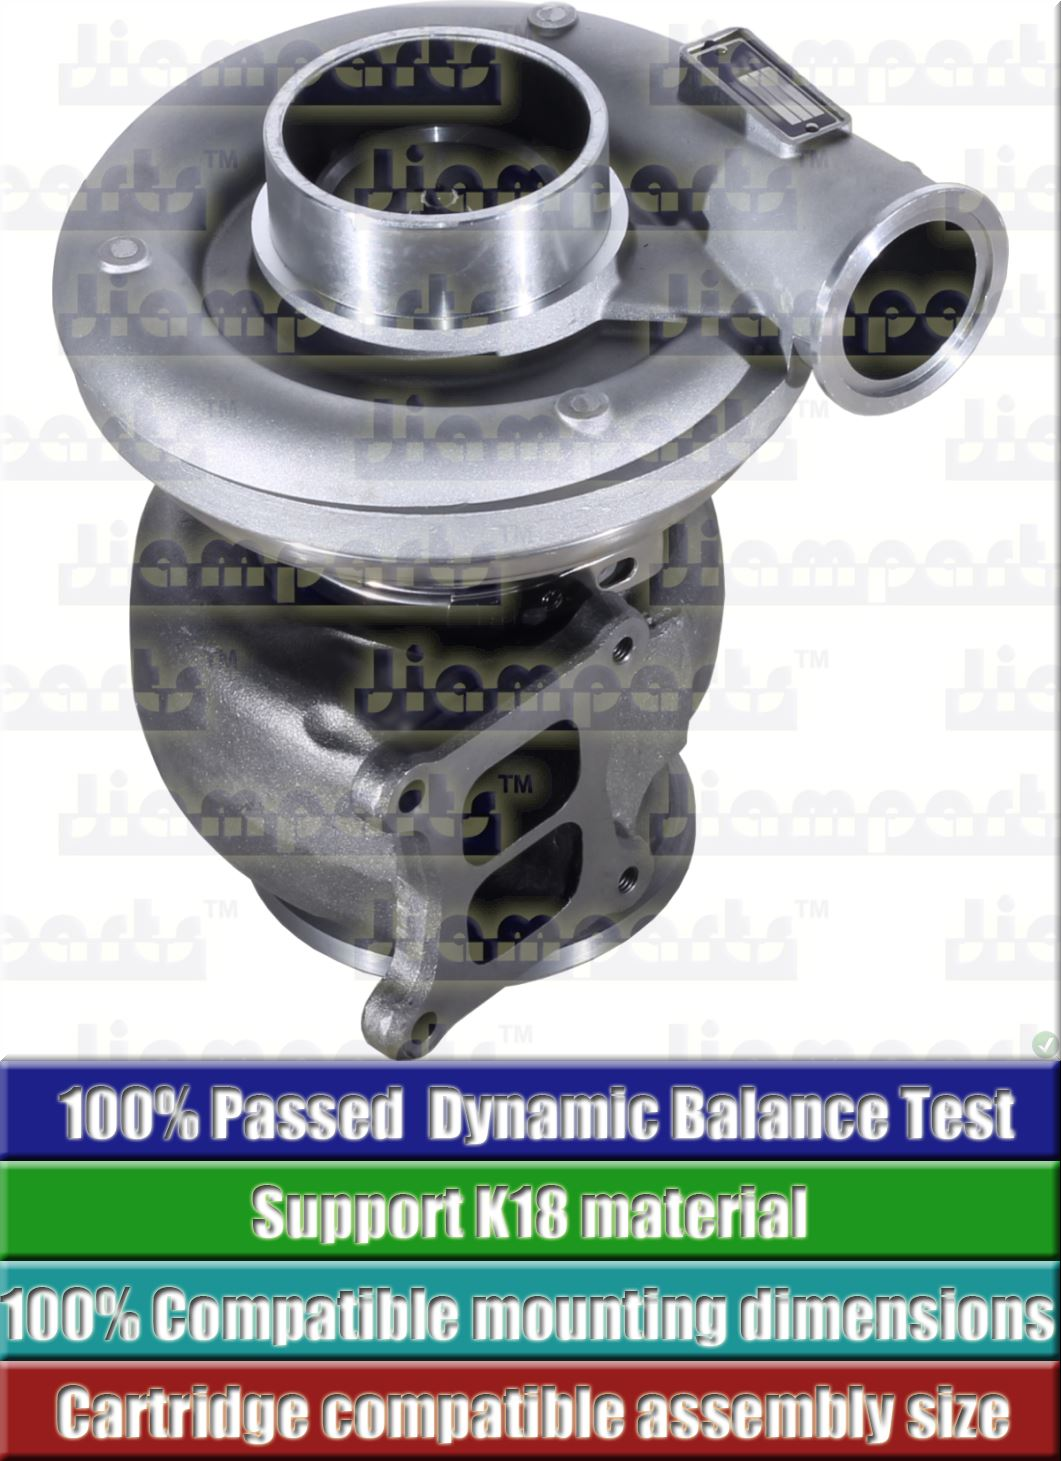 Description image:Turbocharger HX55 3590044